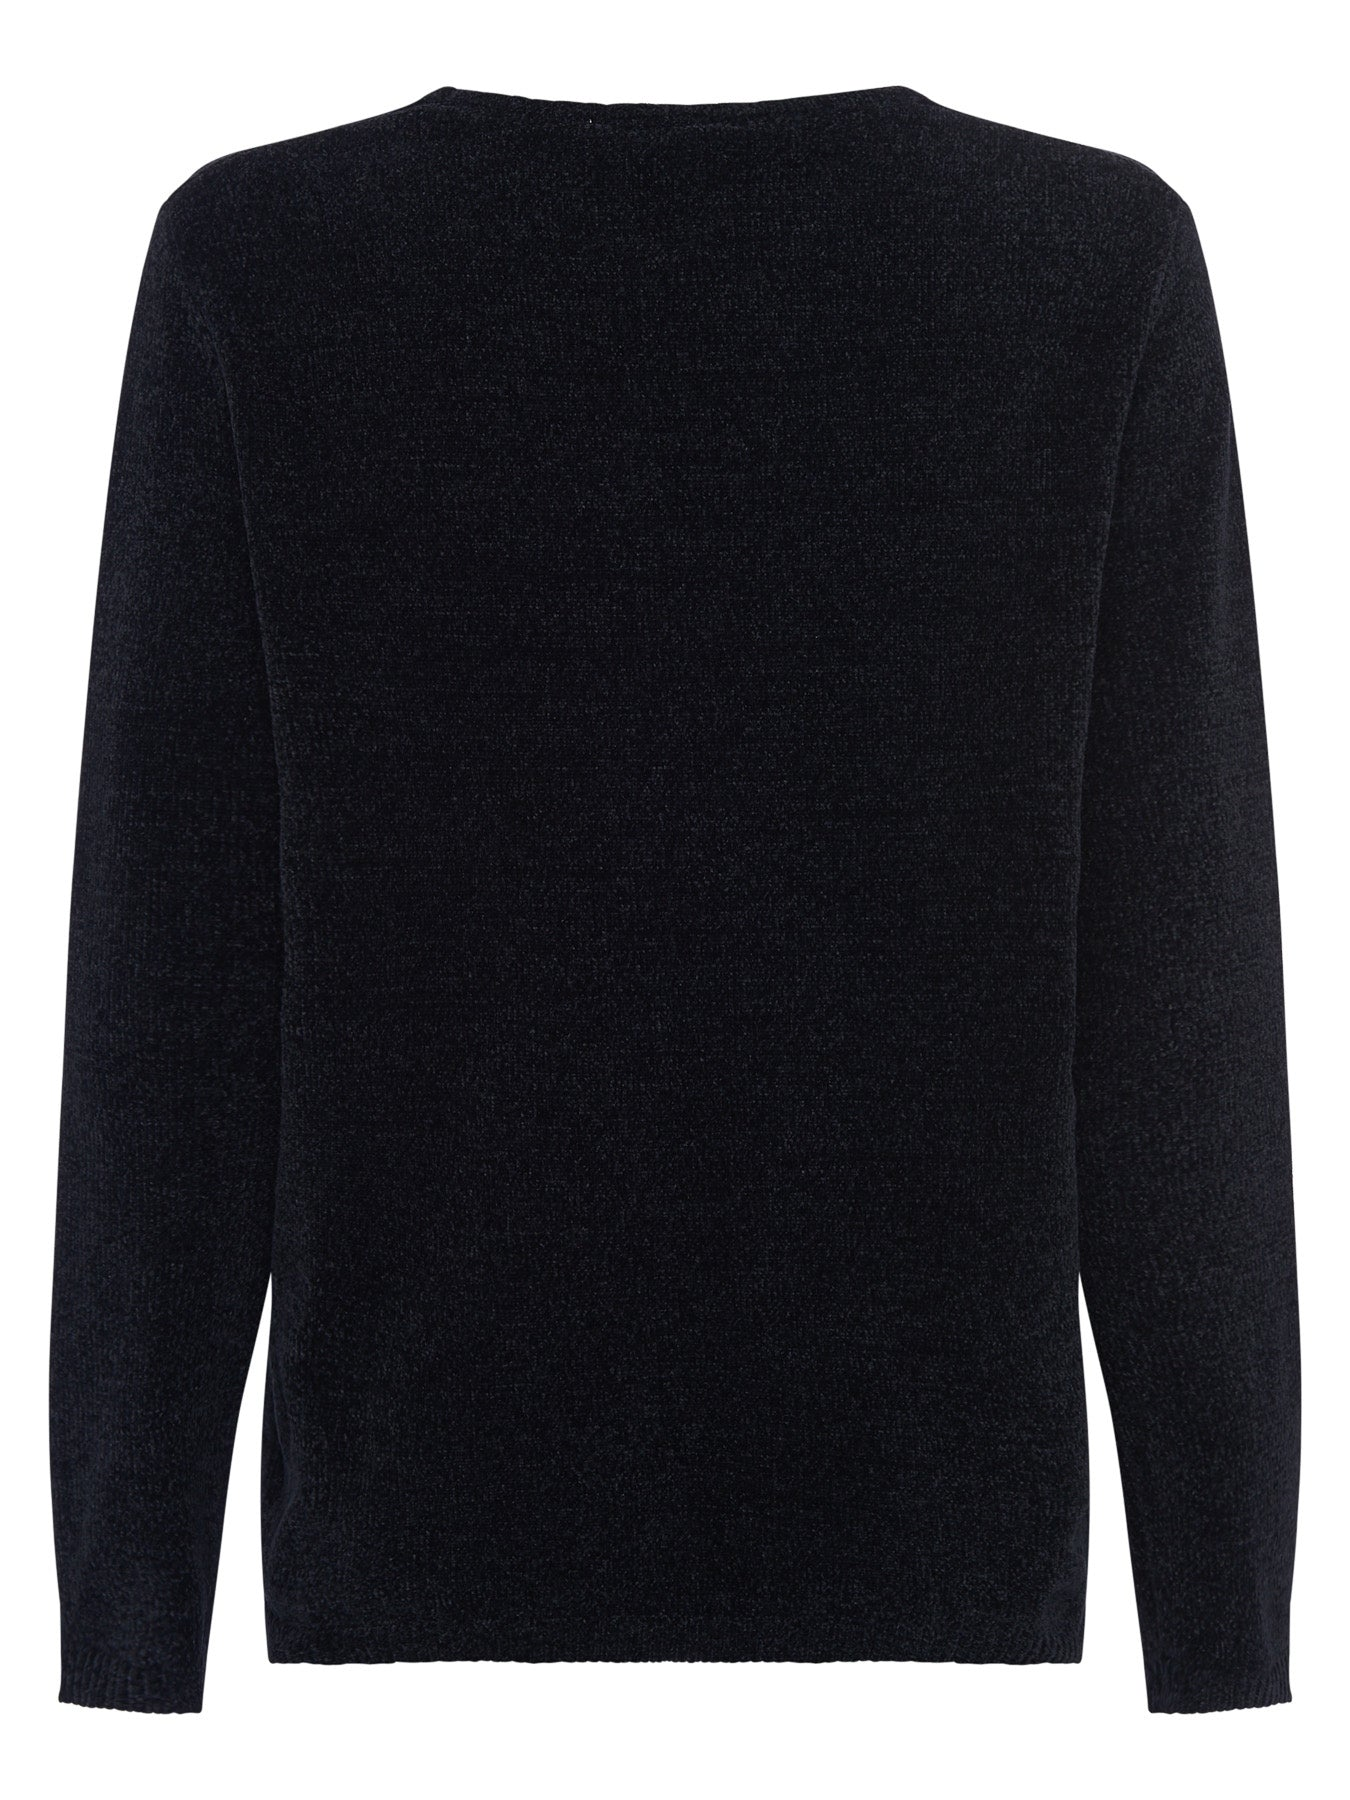 Great Plains Bethan Knit V-neck Jumper for Ladies in Black